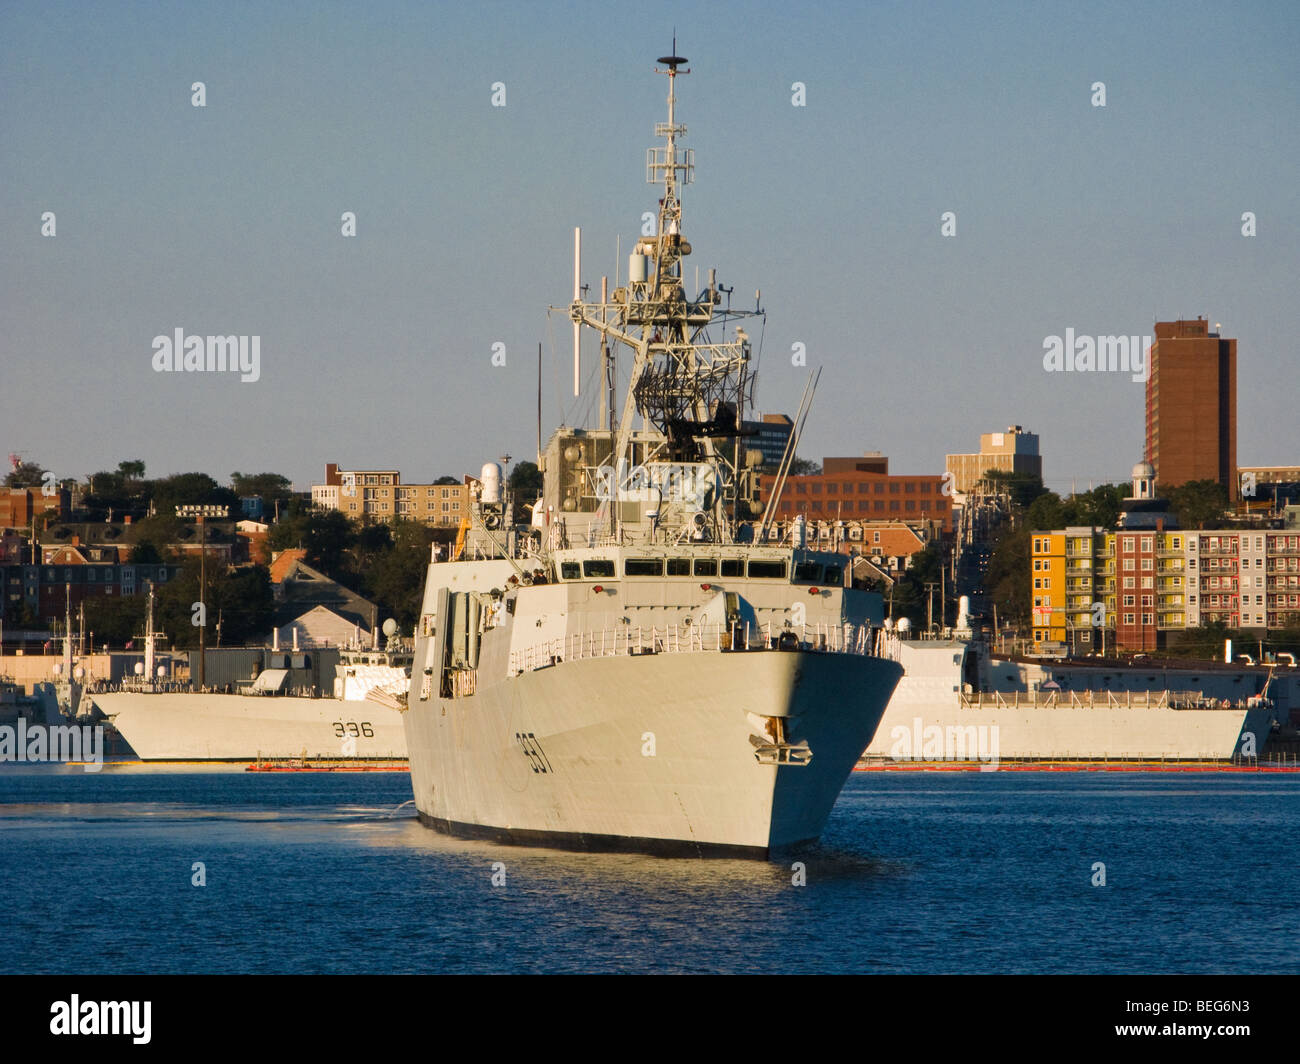 HMCS Fredericton in Halifax Harbour with sistership HMCS Montreal in the background. - Stock Image